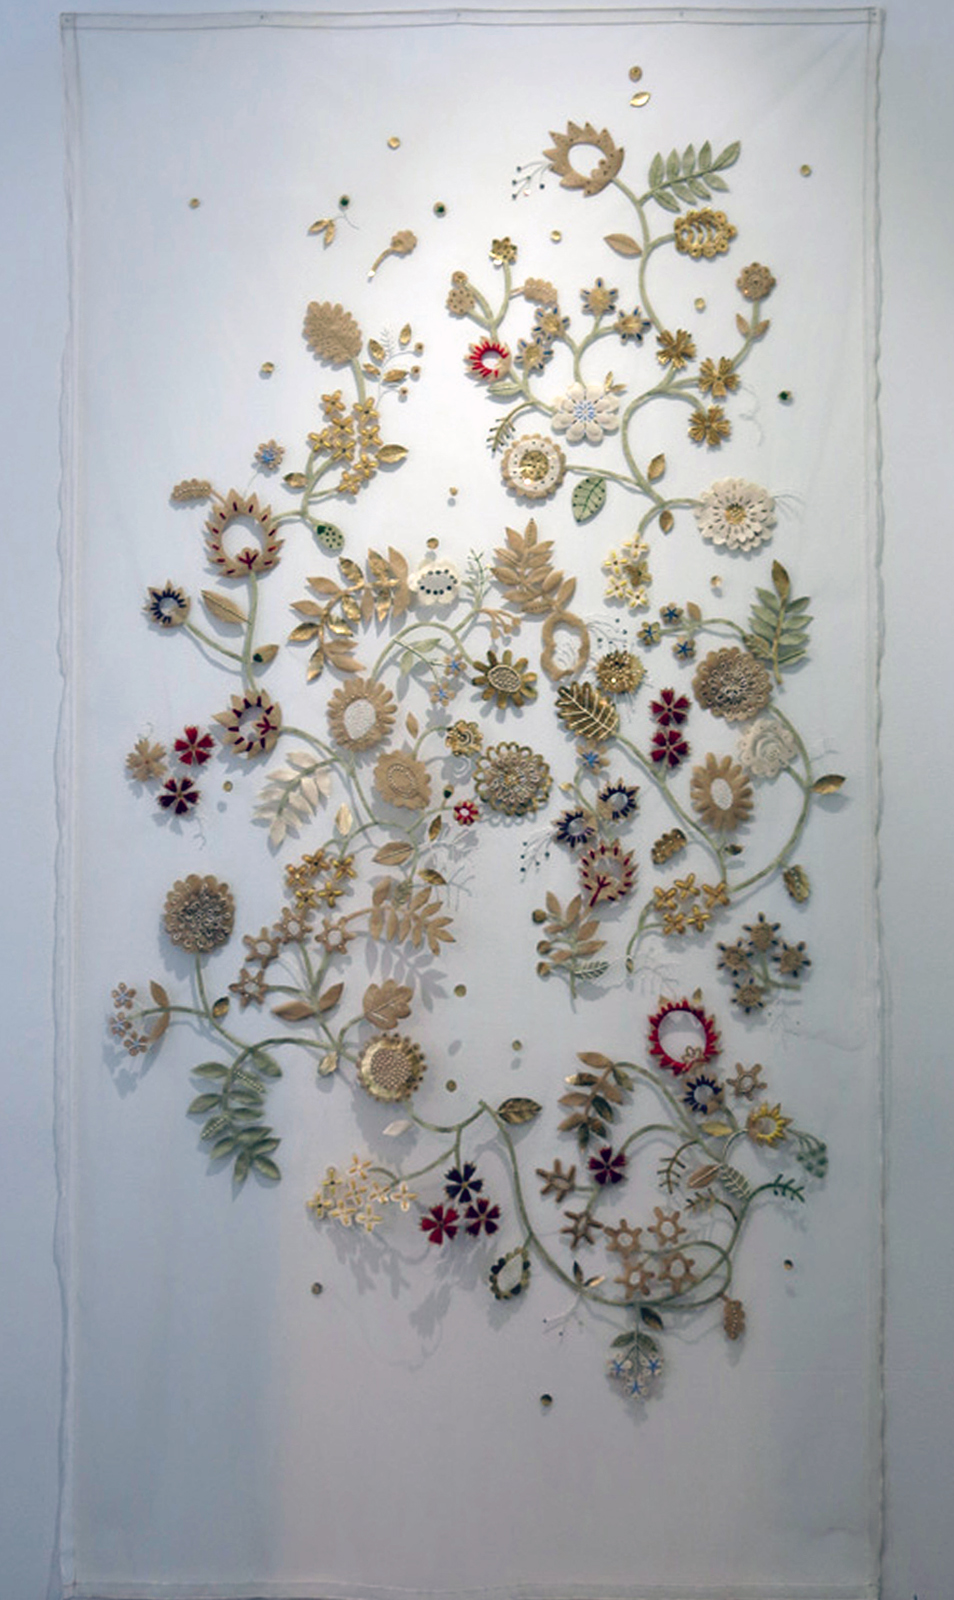 1.  The Original Place - Wall hanging 1 , Elisa Markes-Young, mixed media on Tulle, $4800